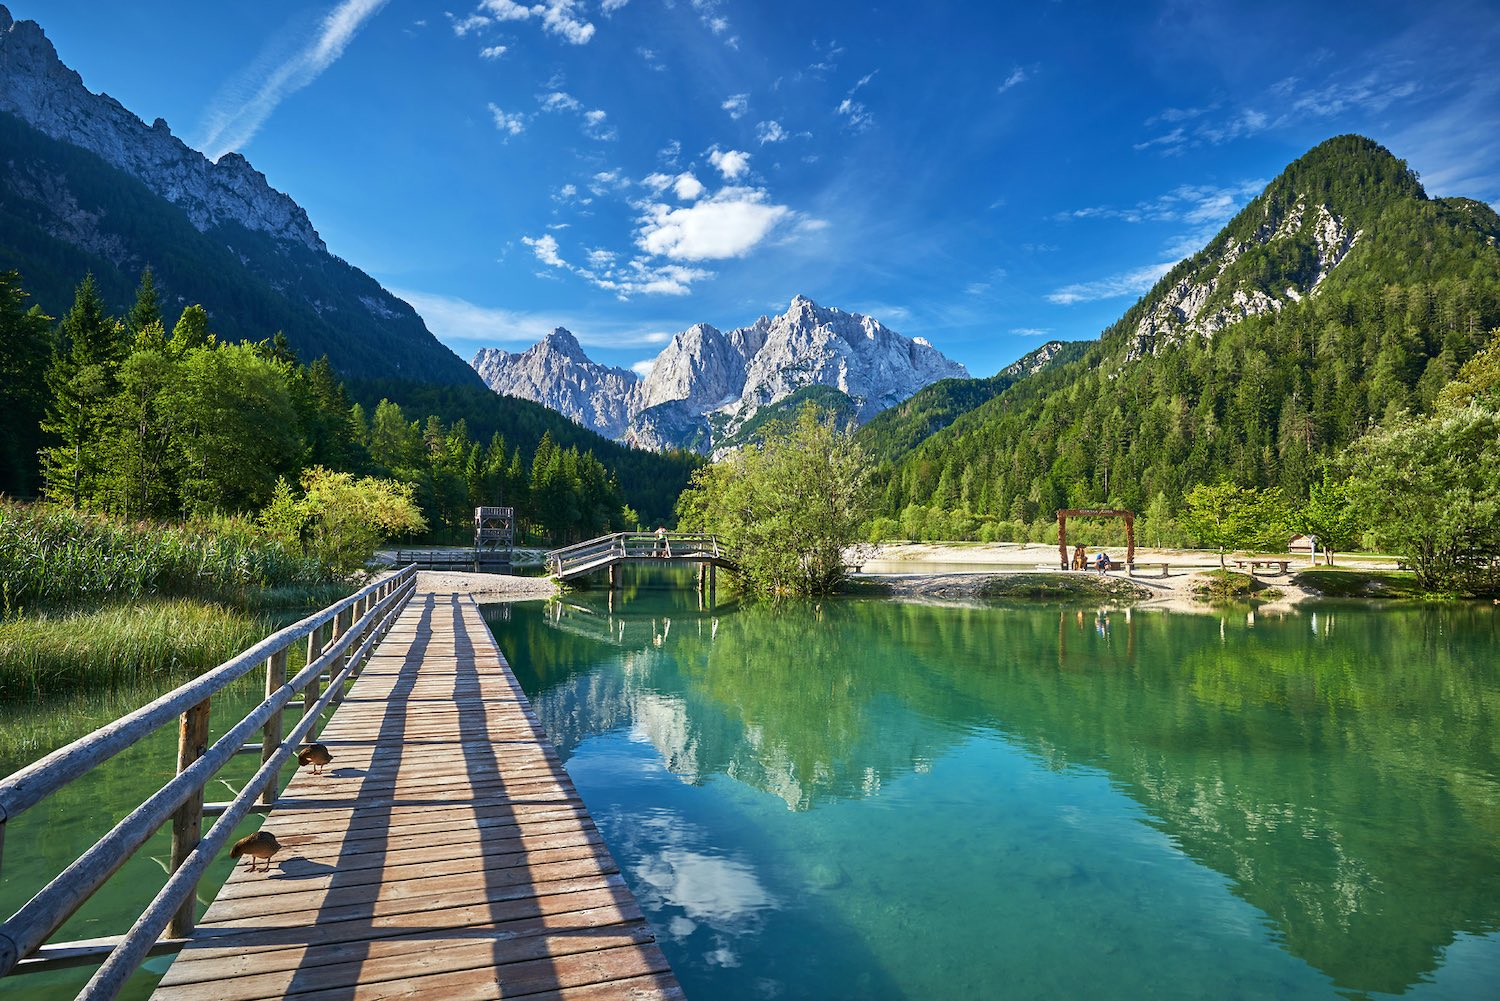 A bridge at Lake Jasna in Kranjska Gora with Mt. Prisojnik and Vrsic Pass in the background, Julian Alps, Slovenia